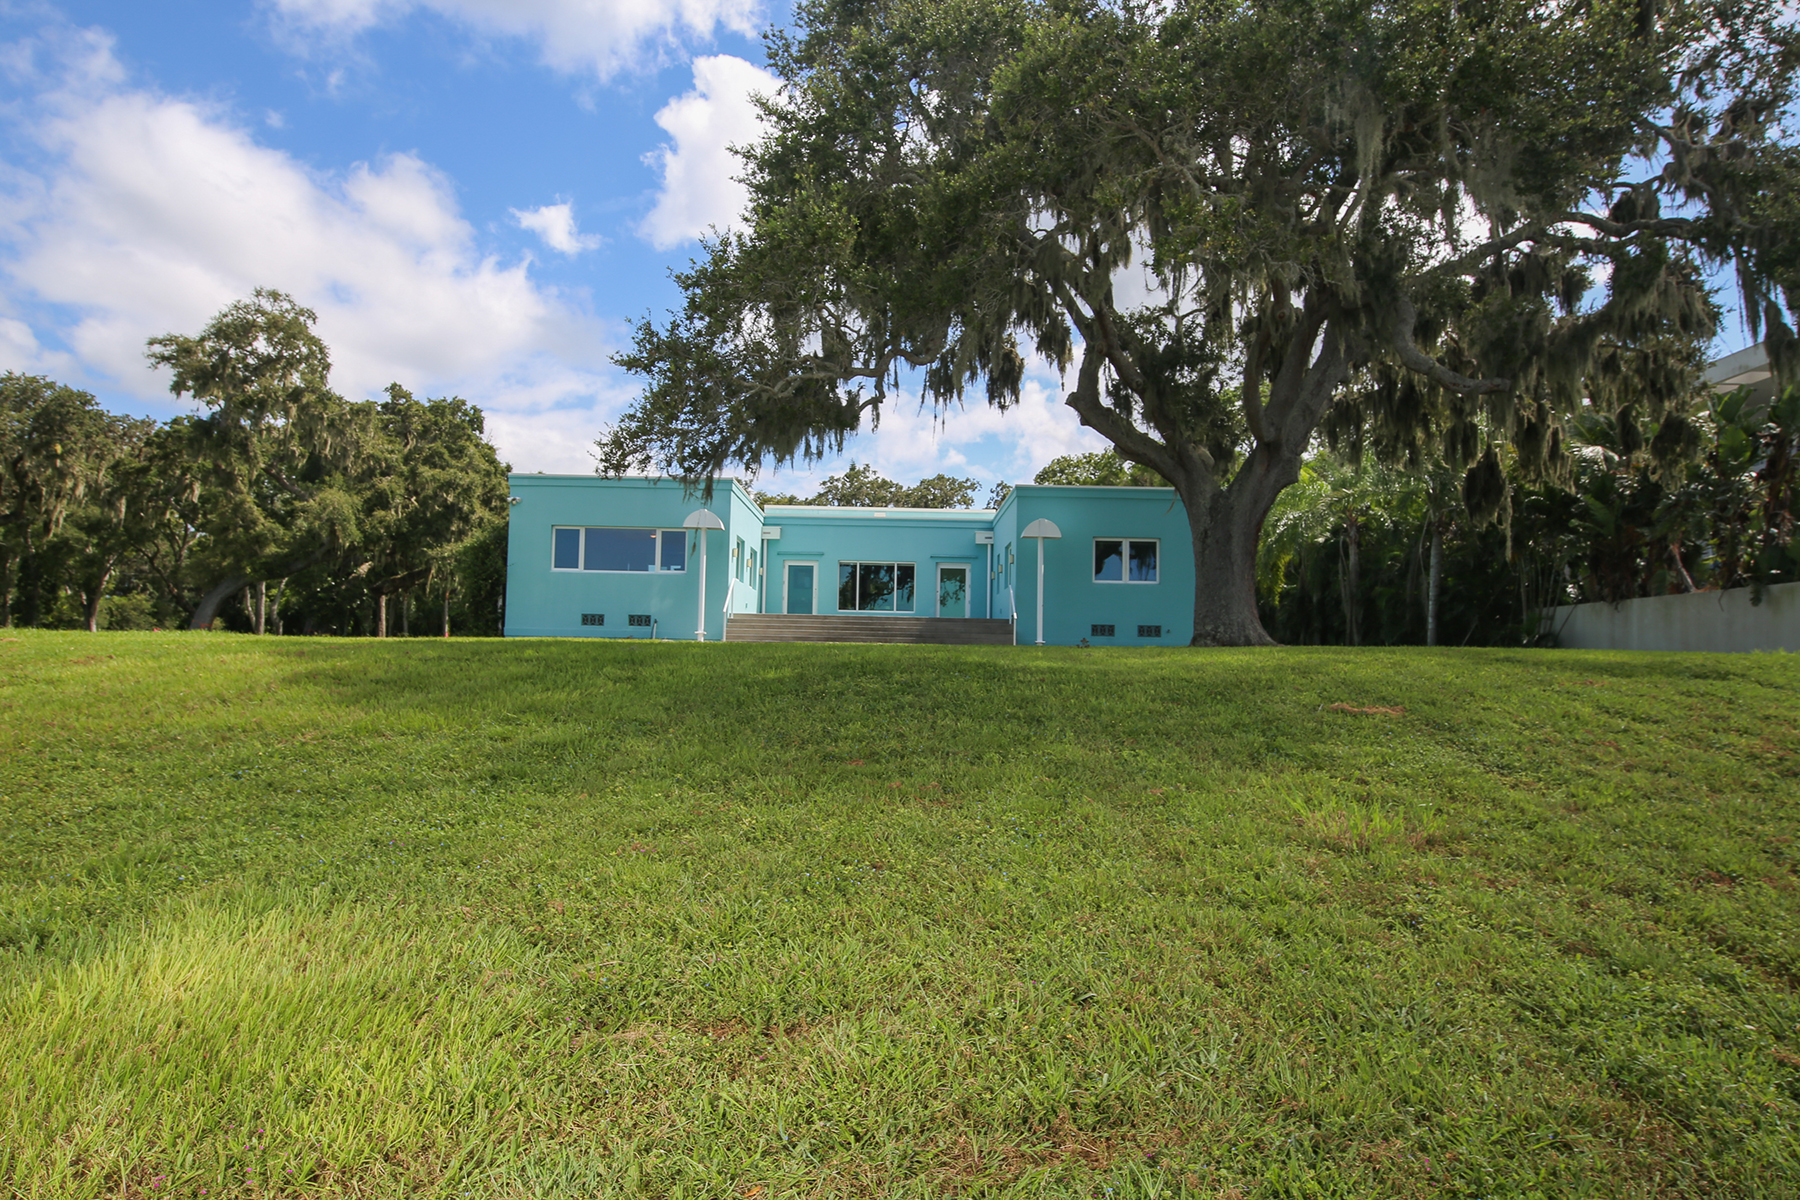 Single Family Home for Sale at SARASOTA BAY PARK 916 Indian Beach Dr Sarasota, Florida, 34234 United States